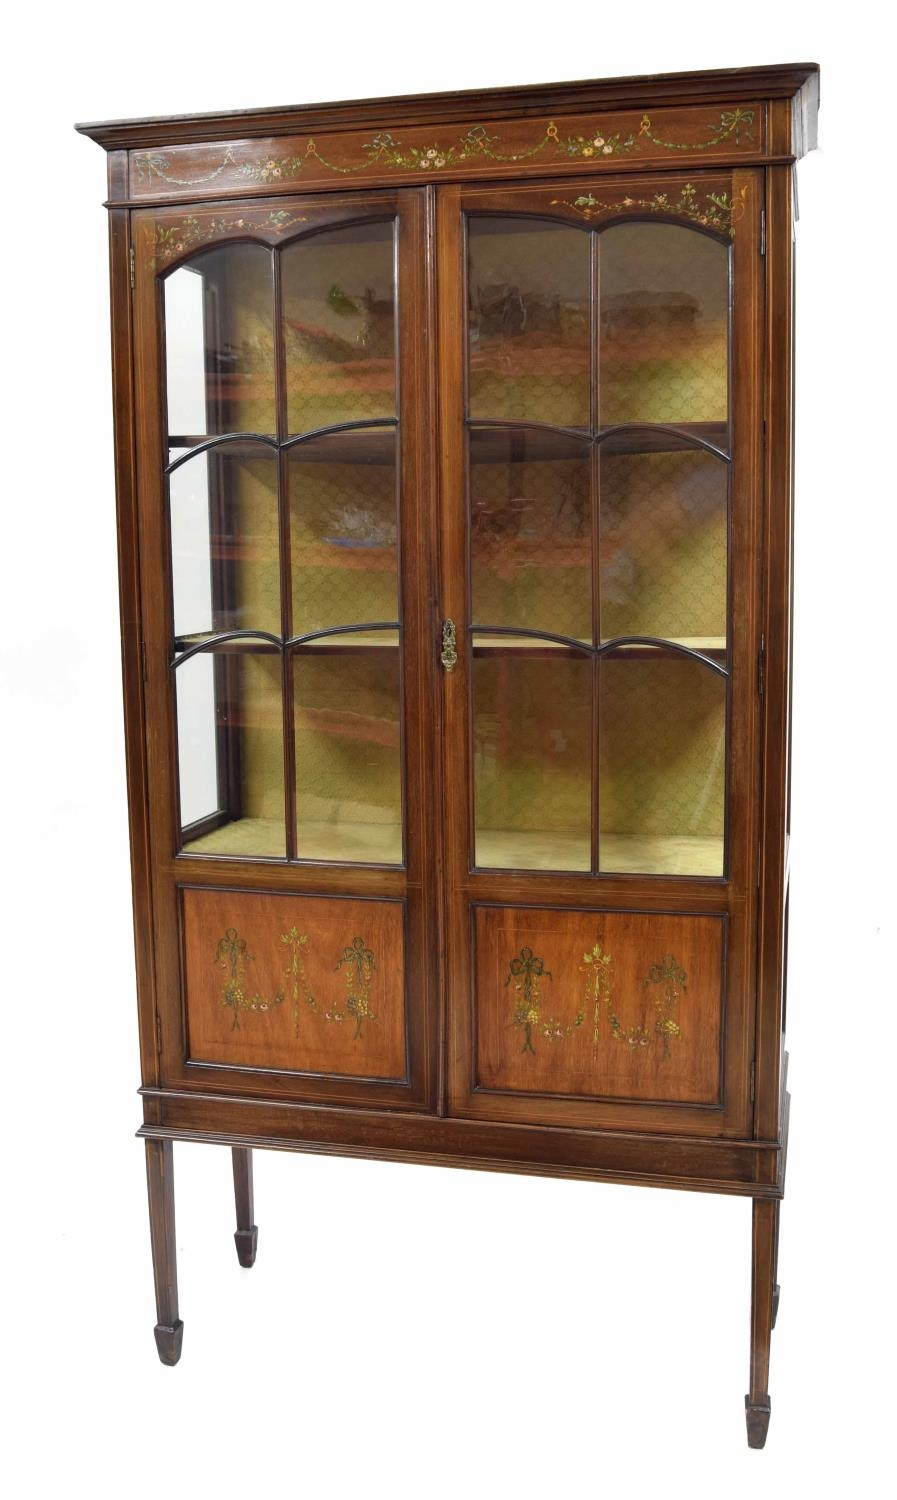 Edwardian mahogany inlaid and painted display cabinet painted with floral harebell garlands with two